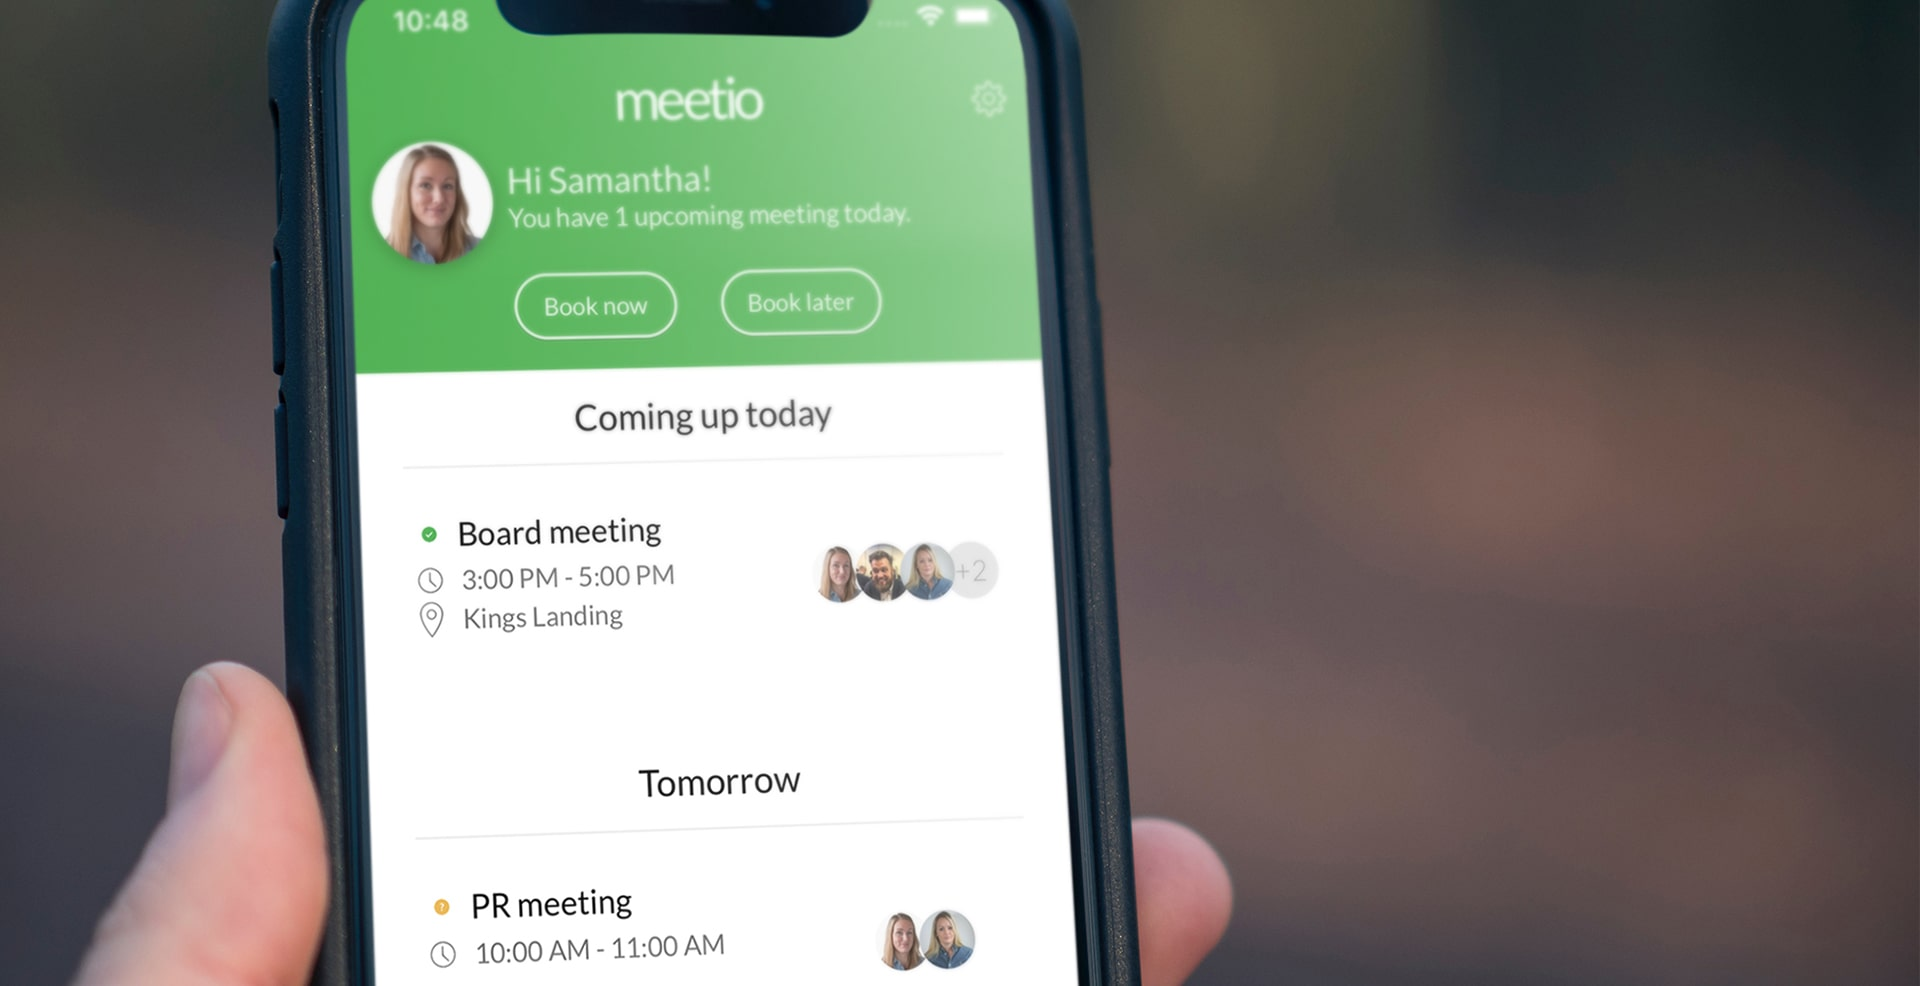 Meetio App calendar view